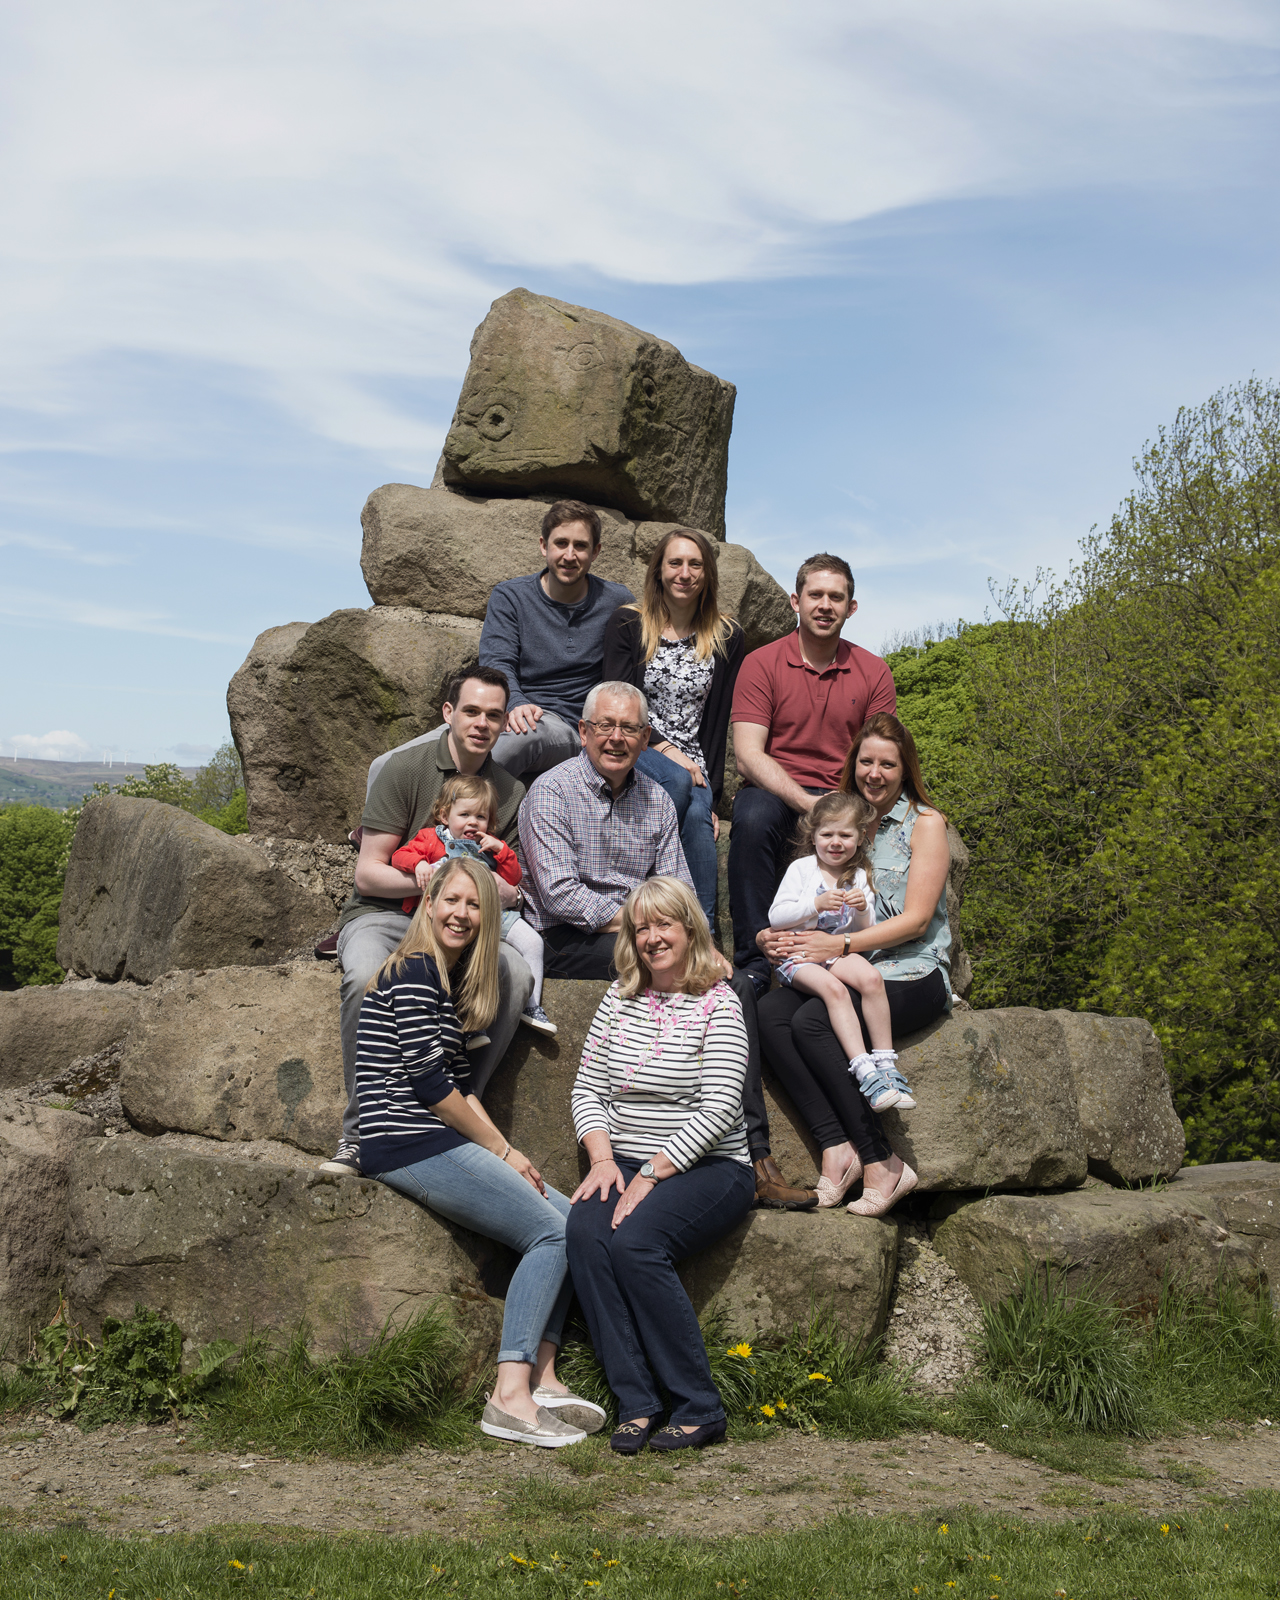 big-family-portrait-photograph-photographer-rochdale.jpg